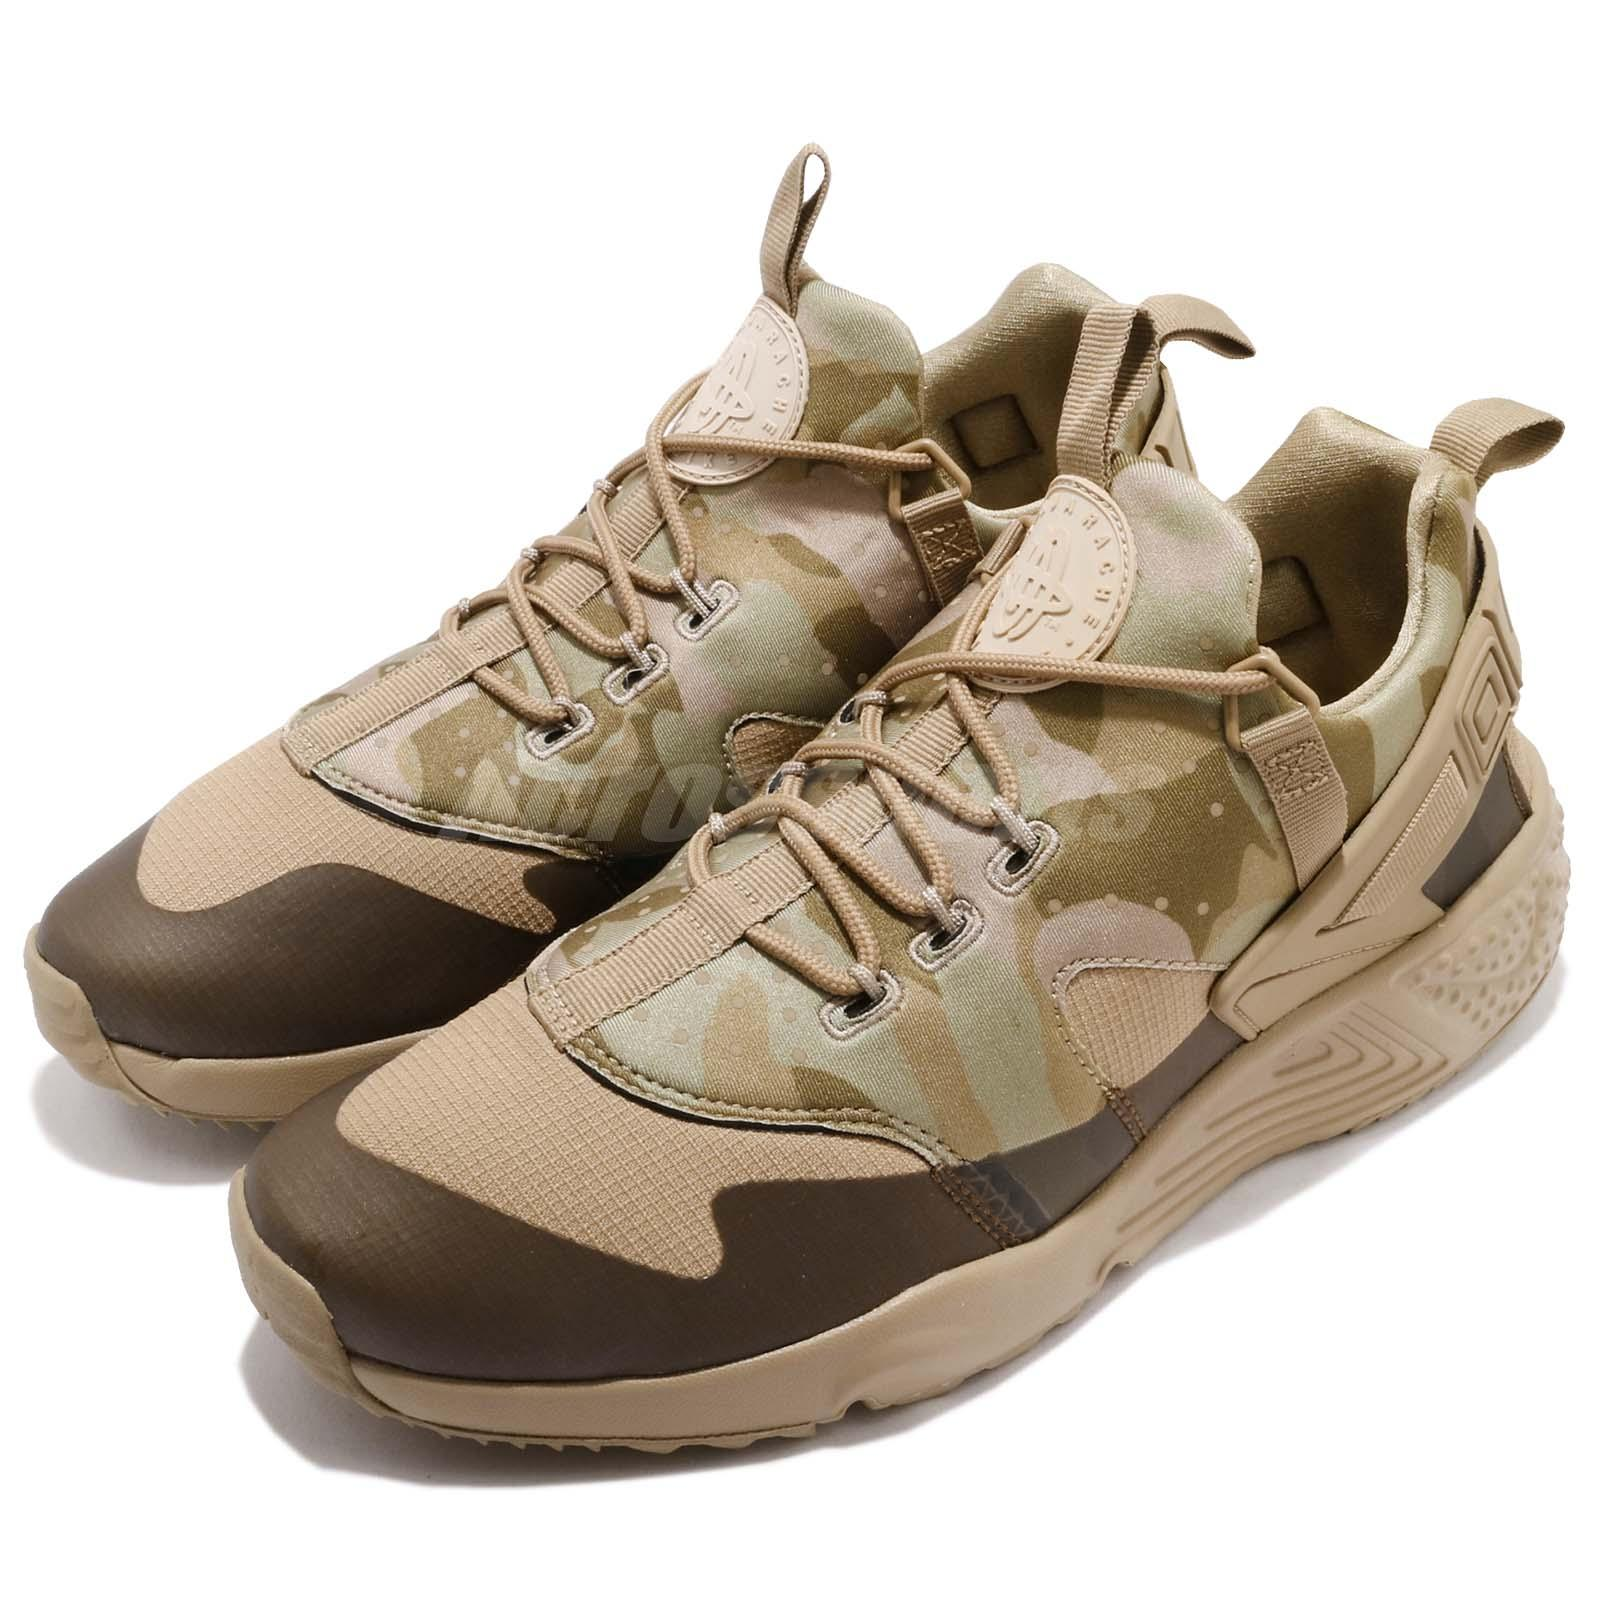 Nike Desert Camo Shoes